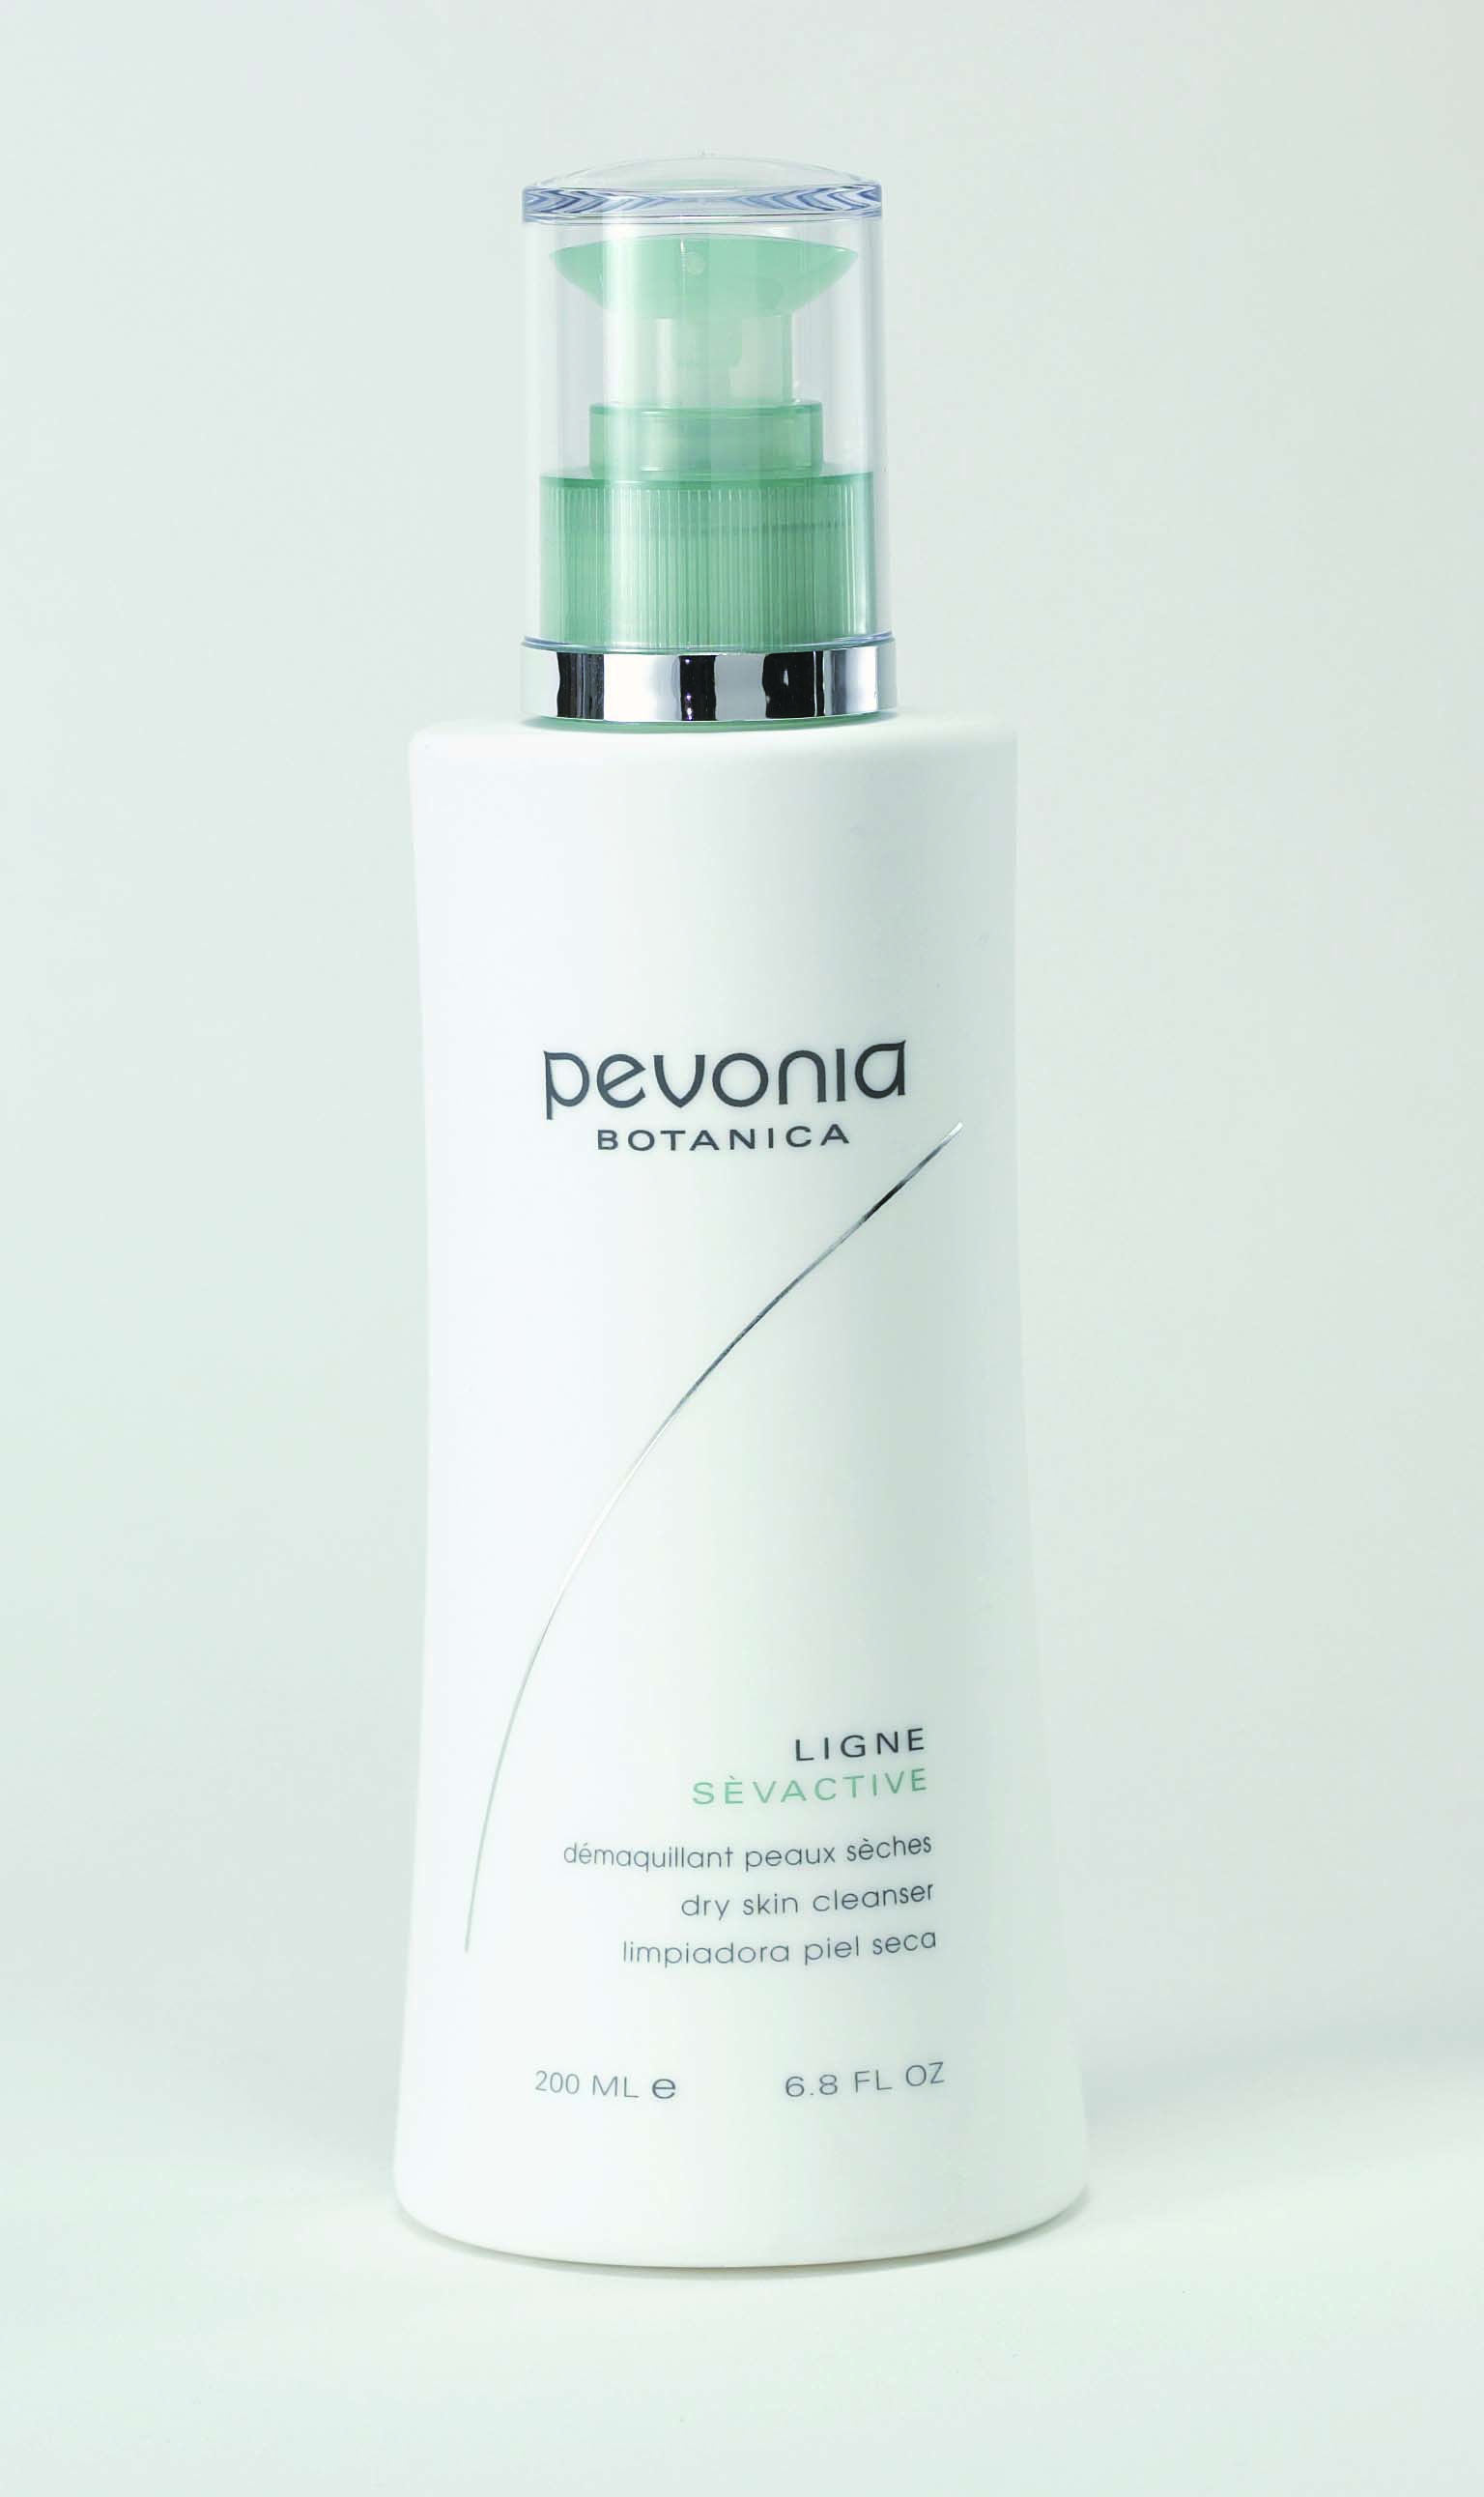 This cleanser is formulated to lift off skin impurities